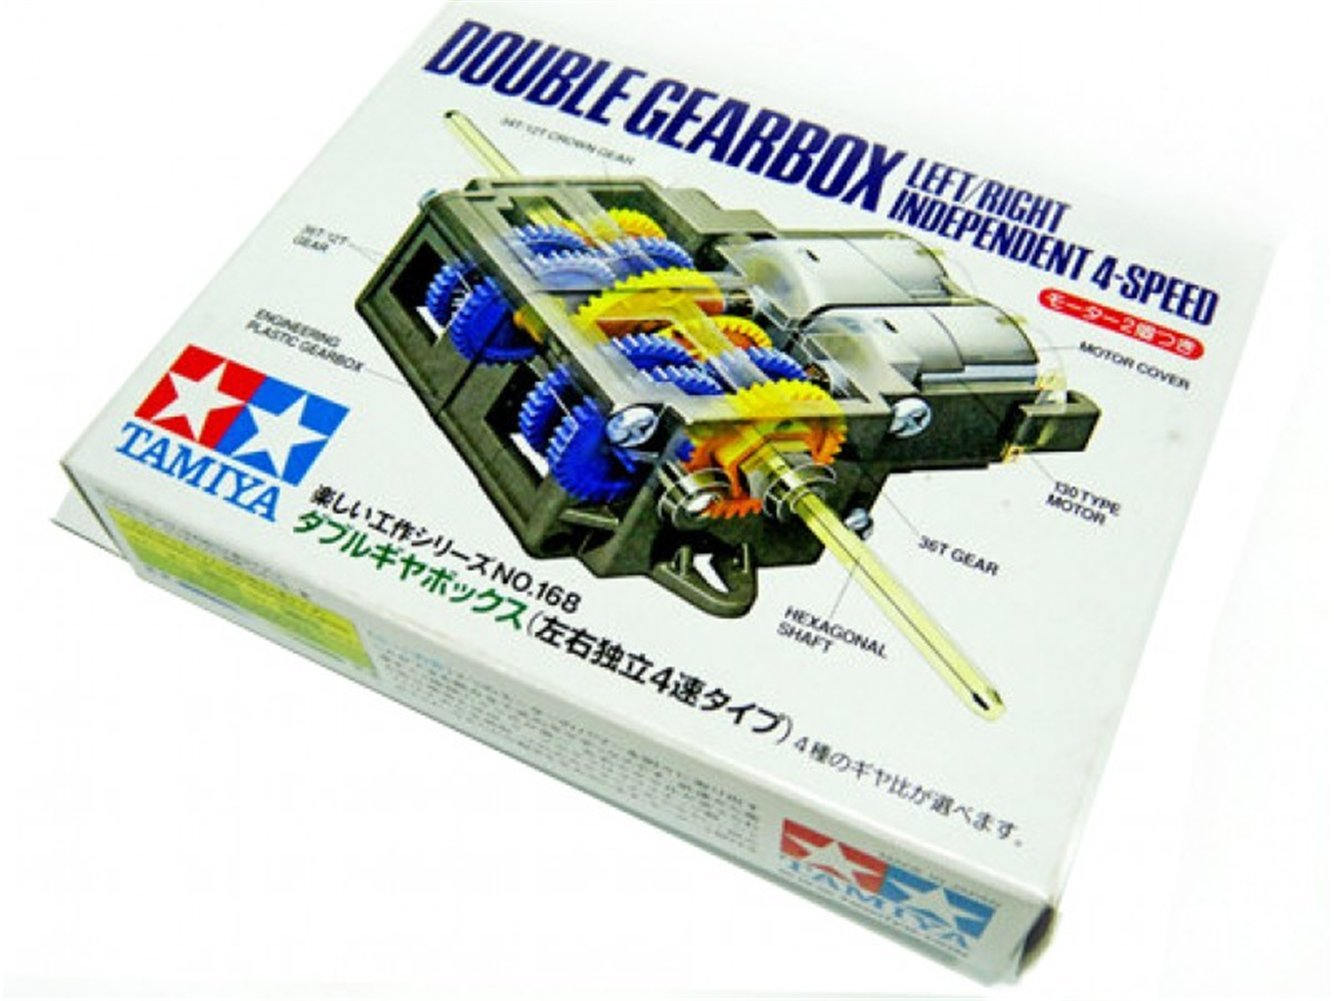 Tamiya 70168 Double Gearbox Kit